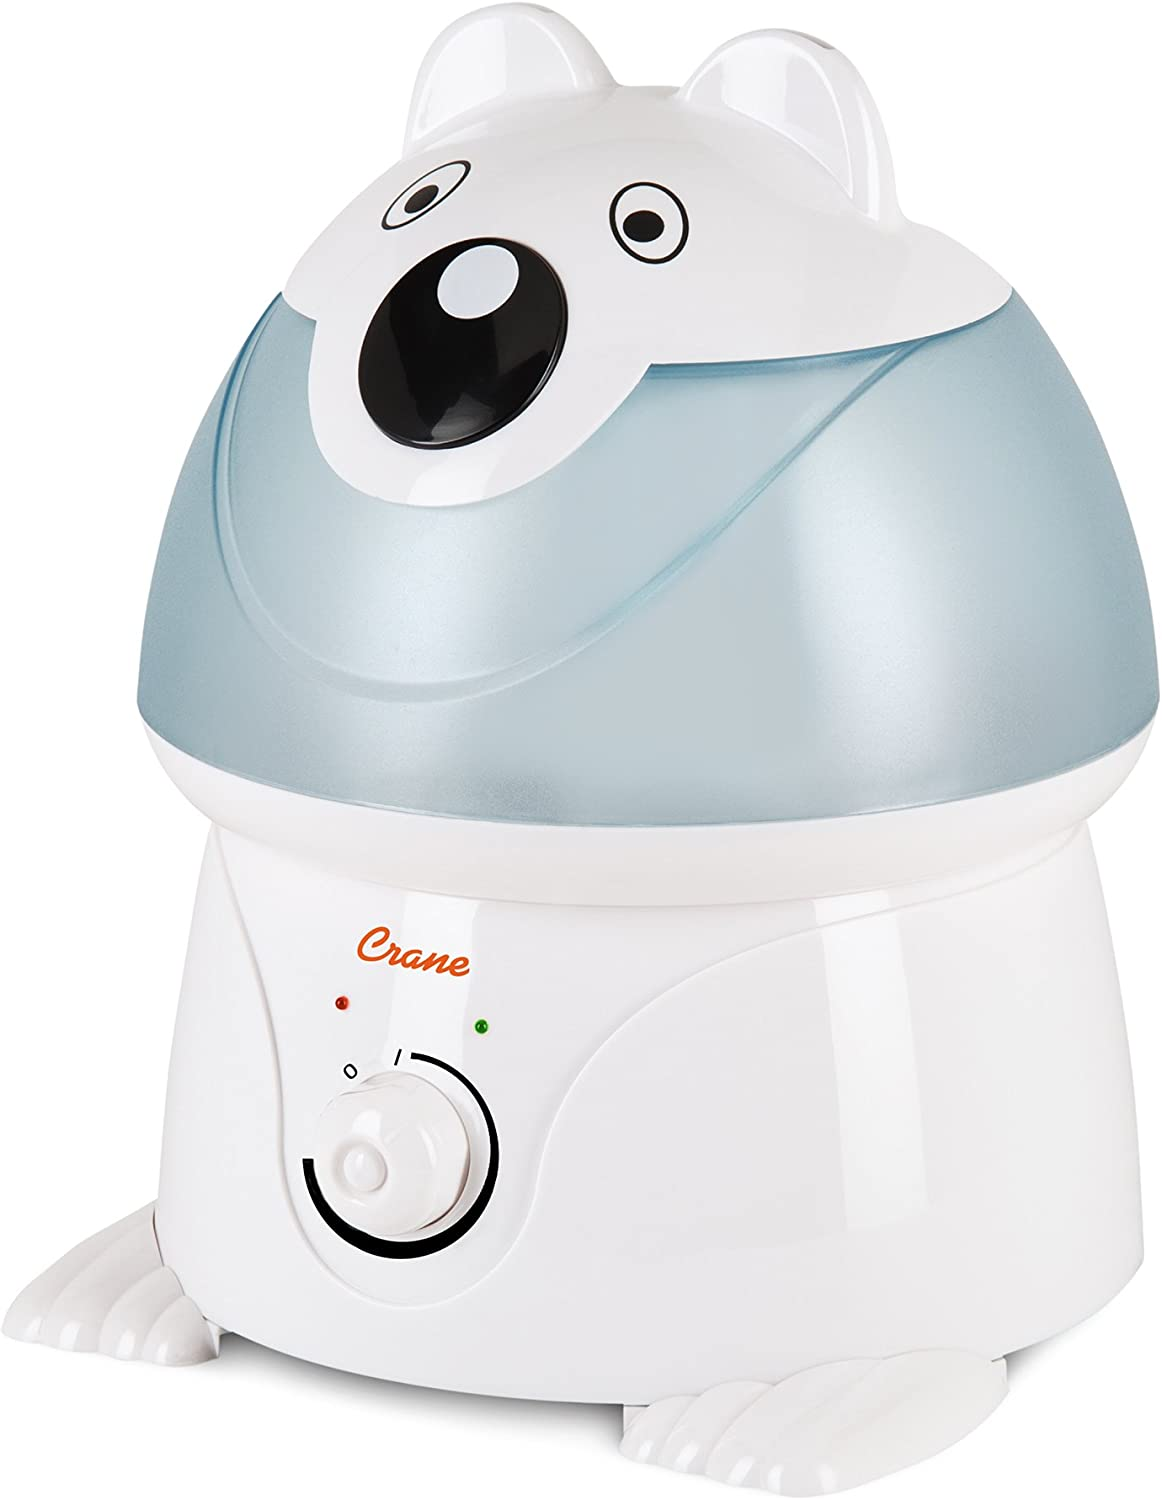 Crane Adorables Ultrasonic Cool Mist Humidifier,